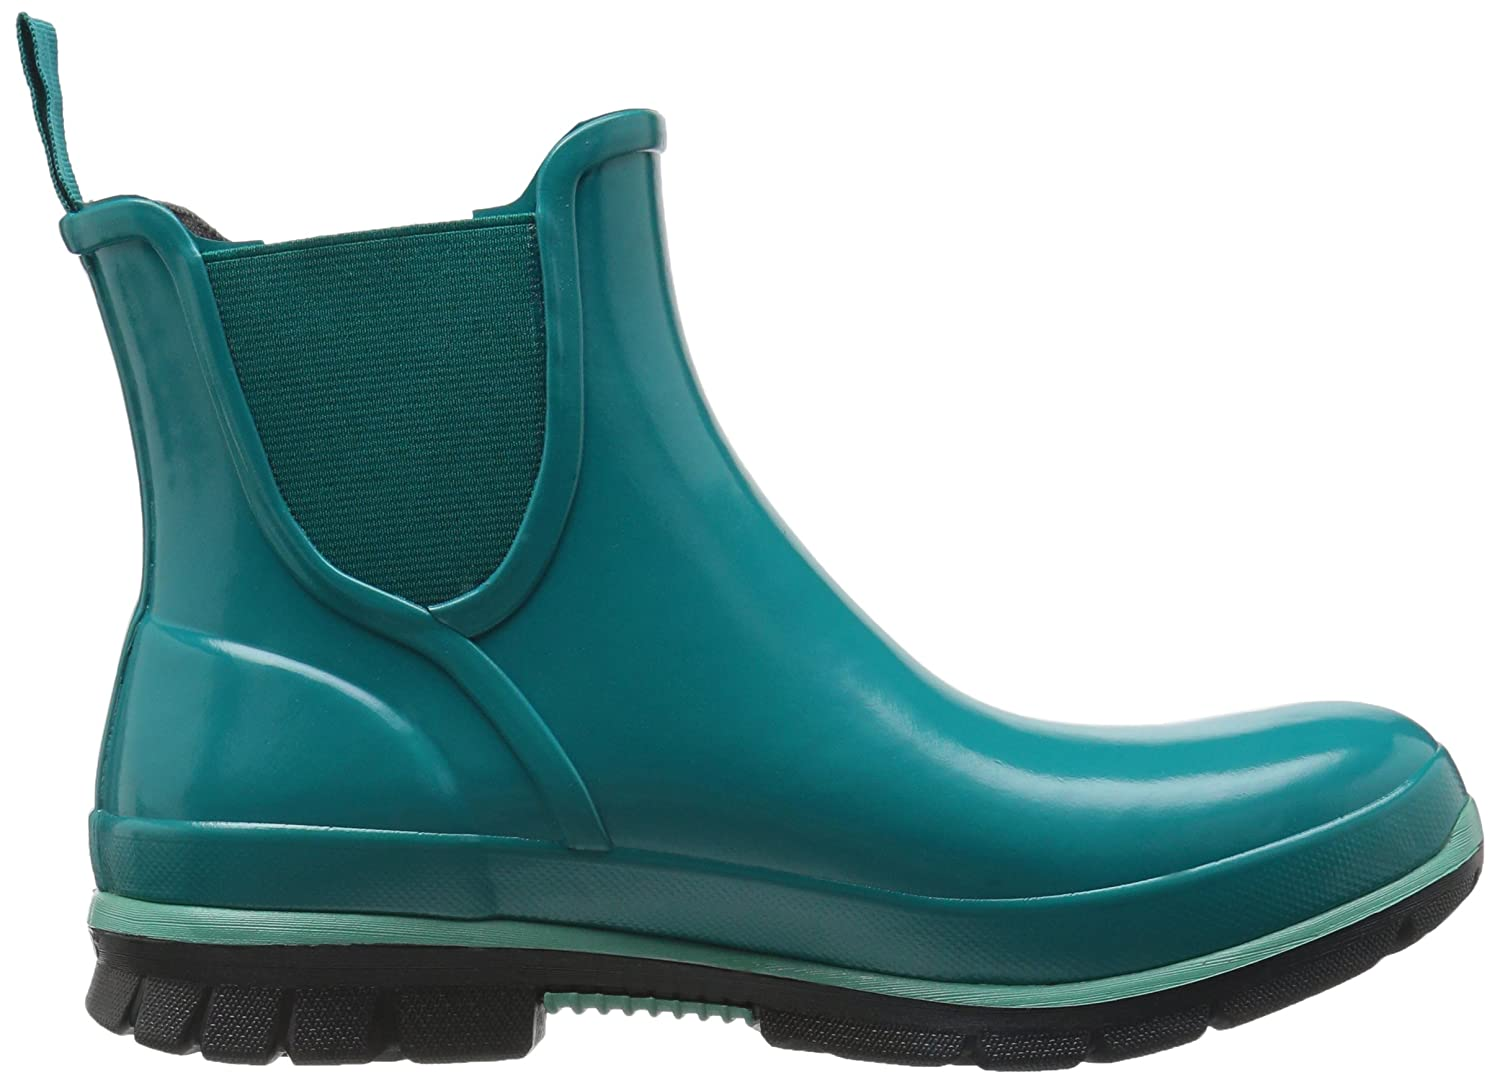 Bogs Women's Amanda Slip on B(M) Rain Boot B01J6T74M2 11 B(M) on US|Emerald ff22d8